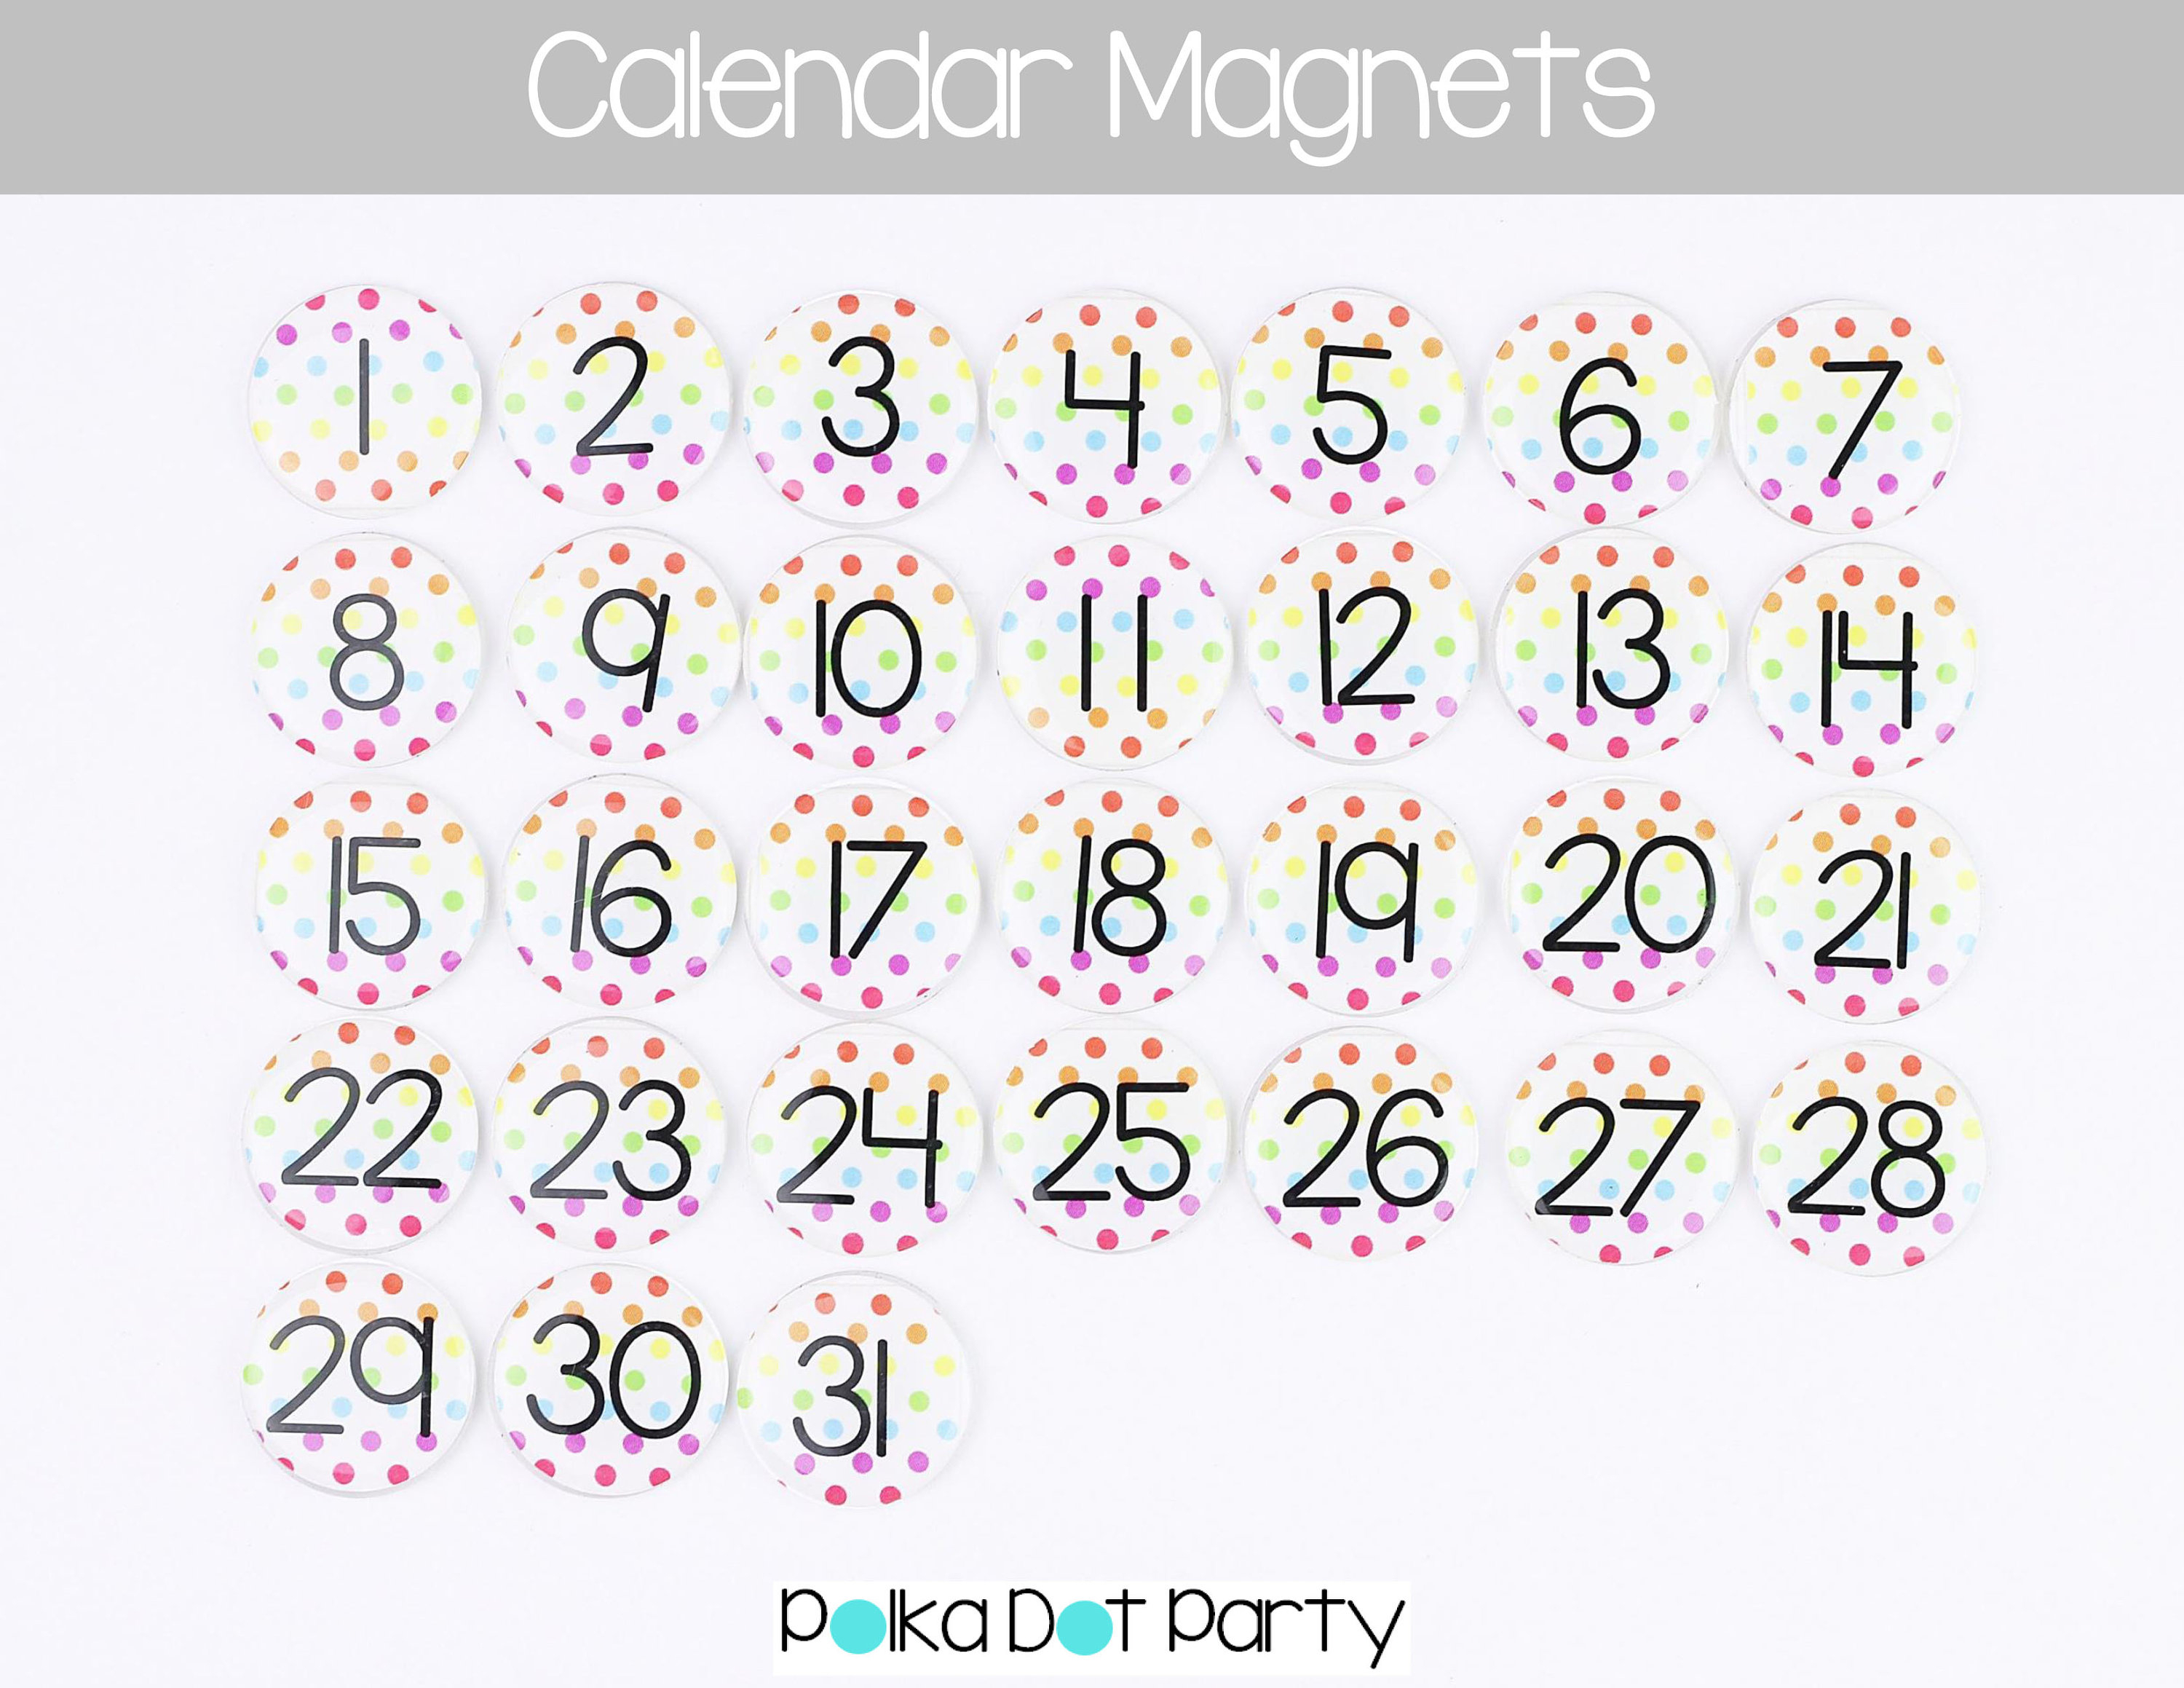 "Monthly Magnetic Calendar Numbers  Rainbow Dot, Epoxy Resin  1"" Size   Perpetual Calendar Magnets 131 with regard to Calendar Numbers 1-31 Printable"